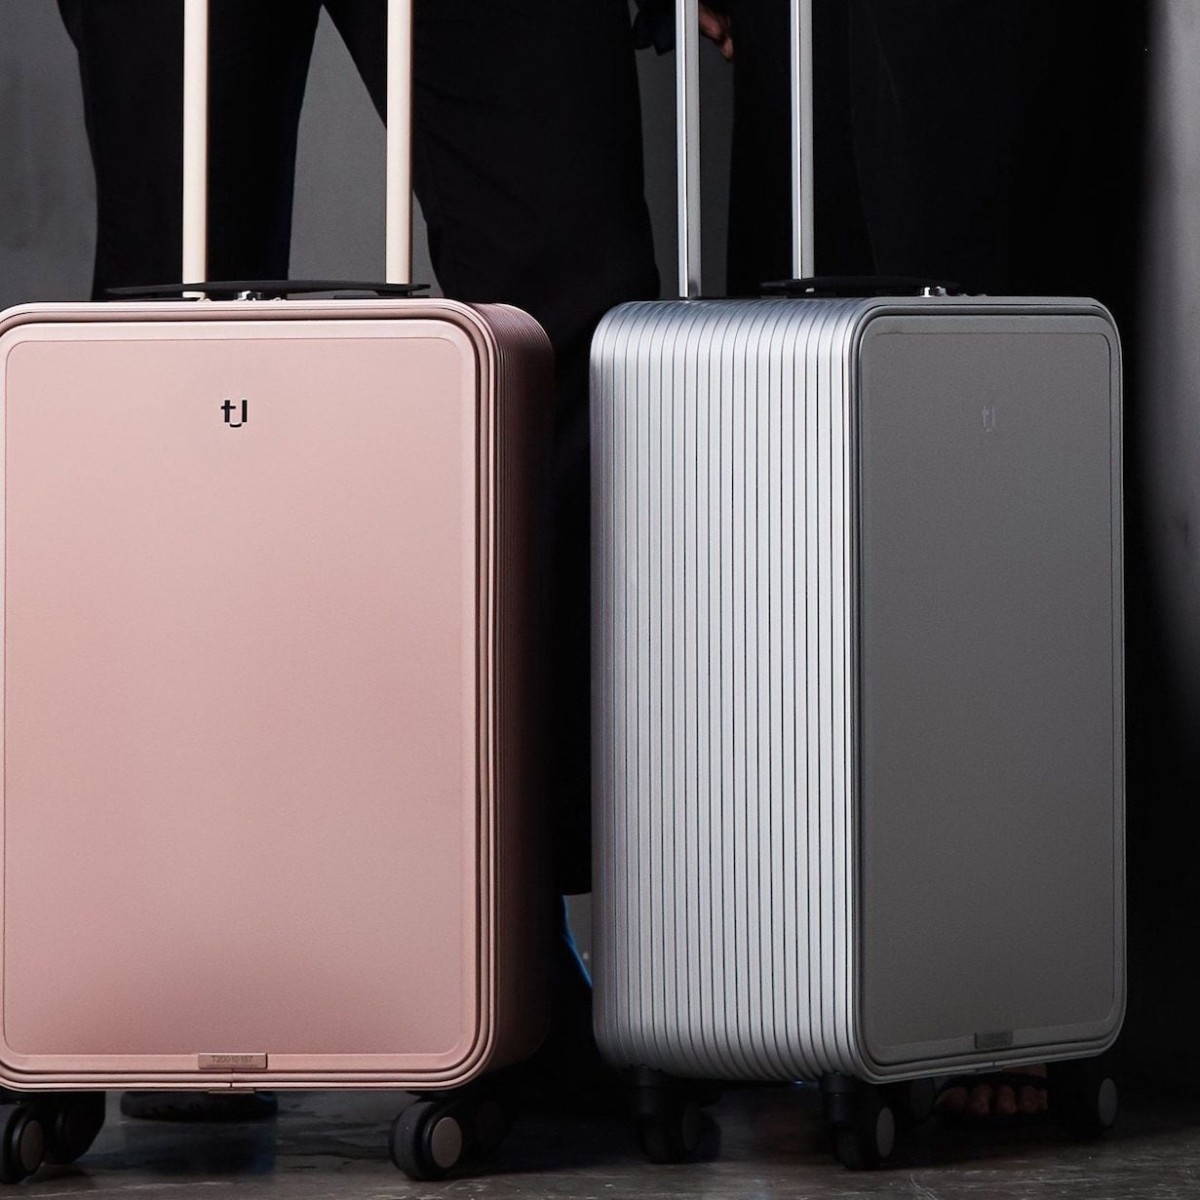 TUPLUS X2 Aluminum Luggage uses a one-touch opening system